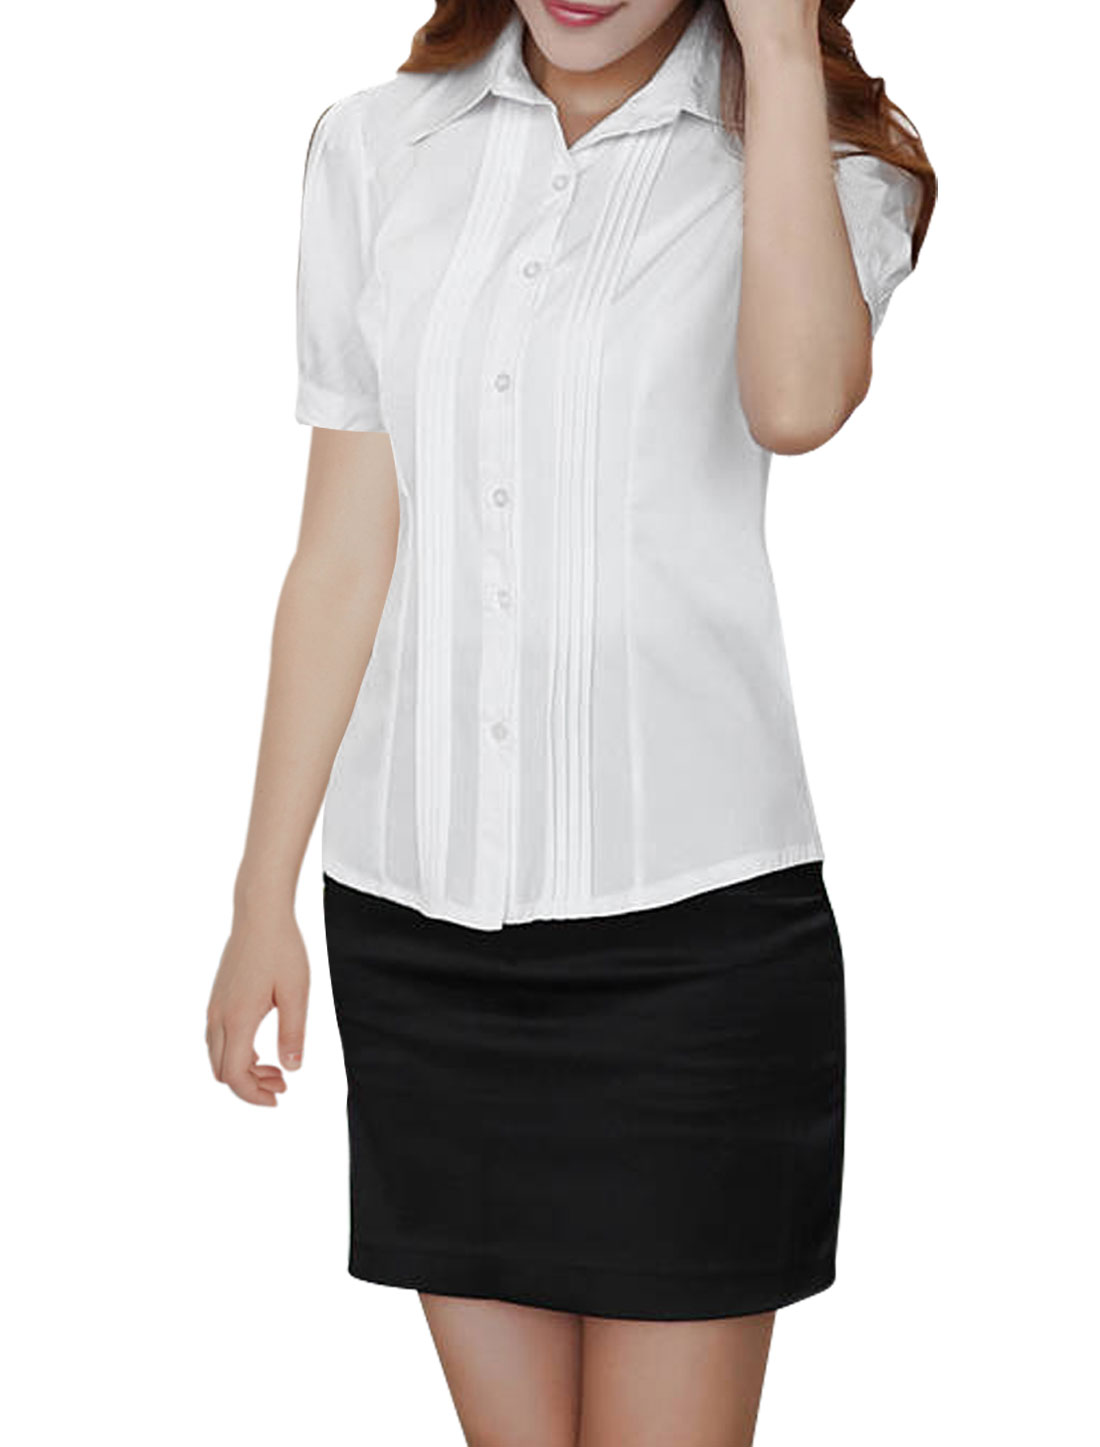 XS Ladies Short Sleeve Point Collar Slim Fit Style Solid Color Shirt White